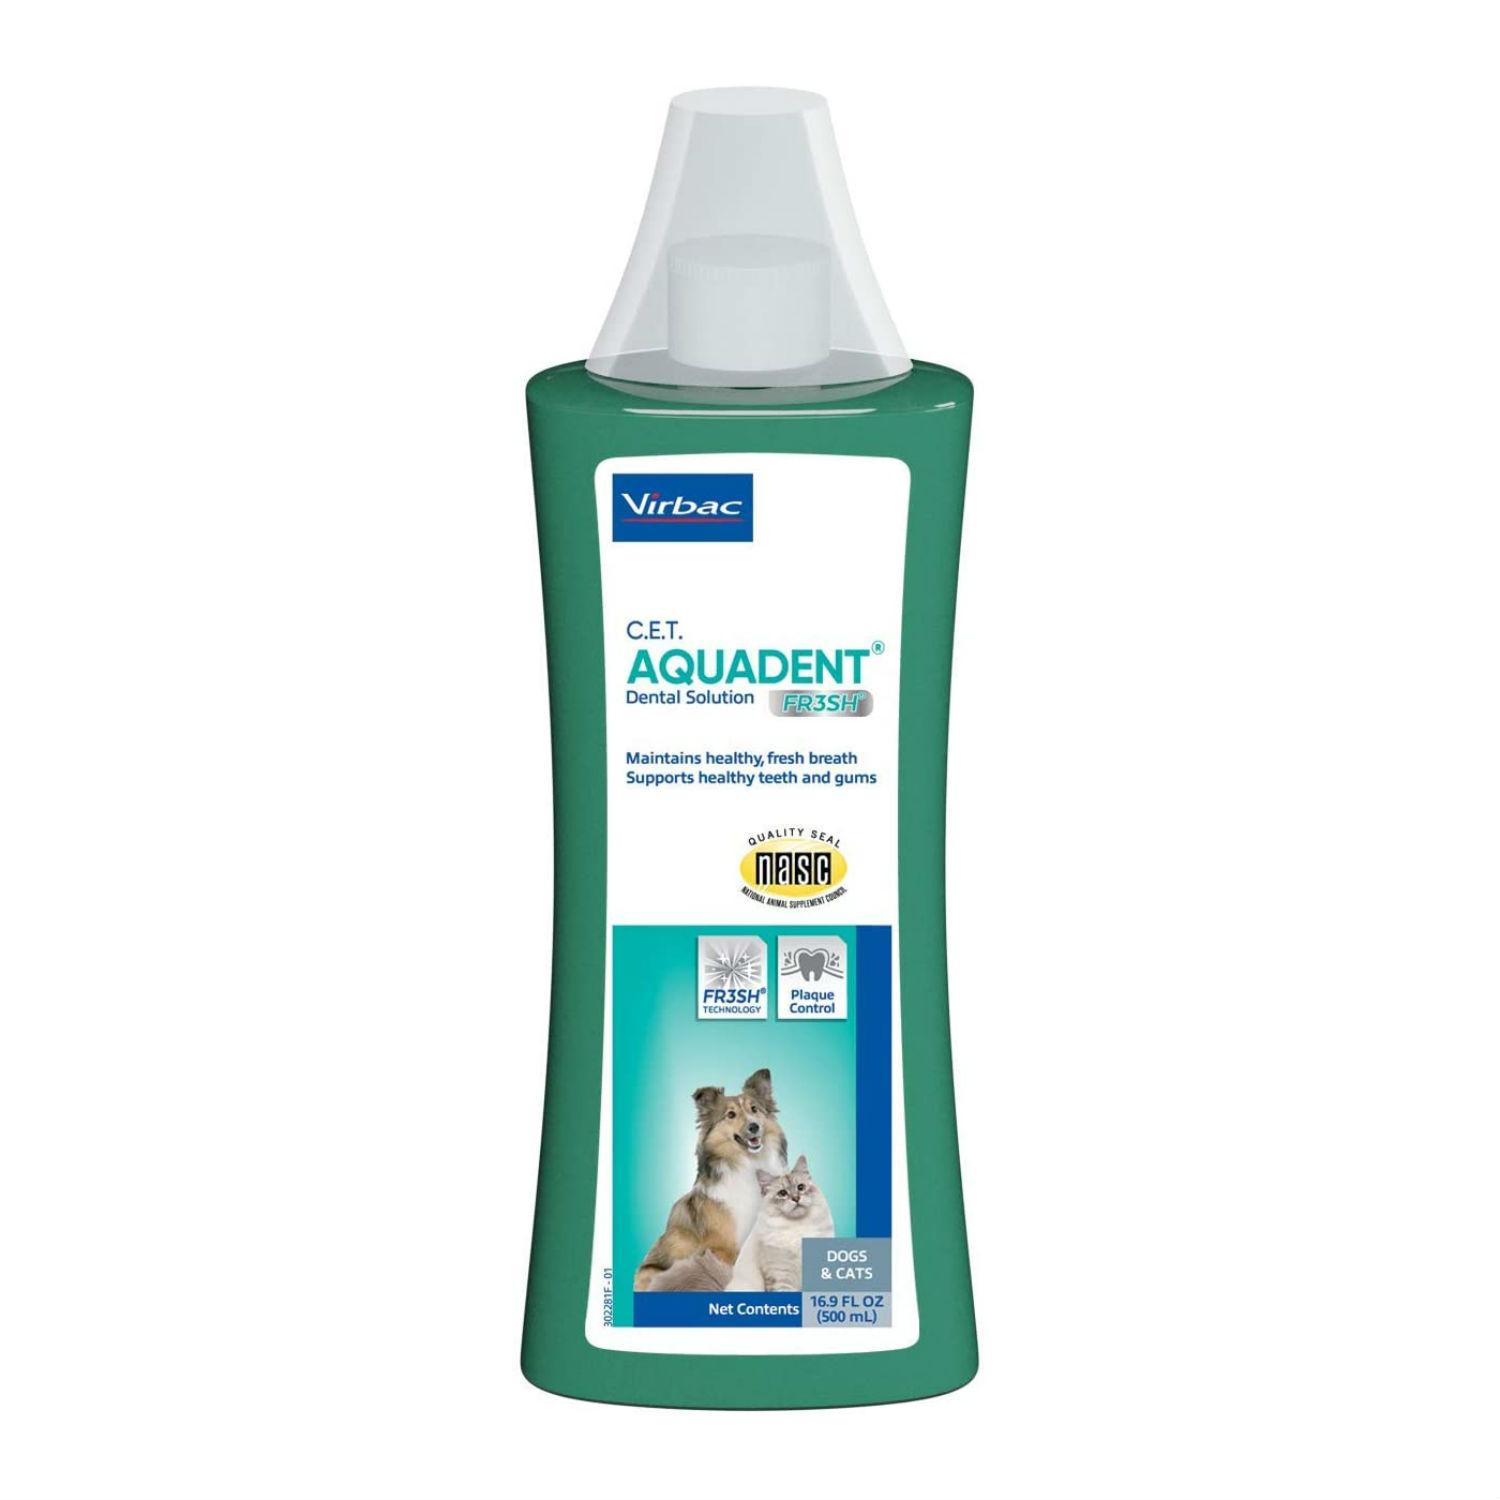 Virbac C.E.T. Aquadent FR3SH Dental Solution for Dogs and Cats